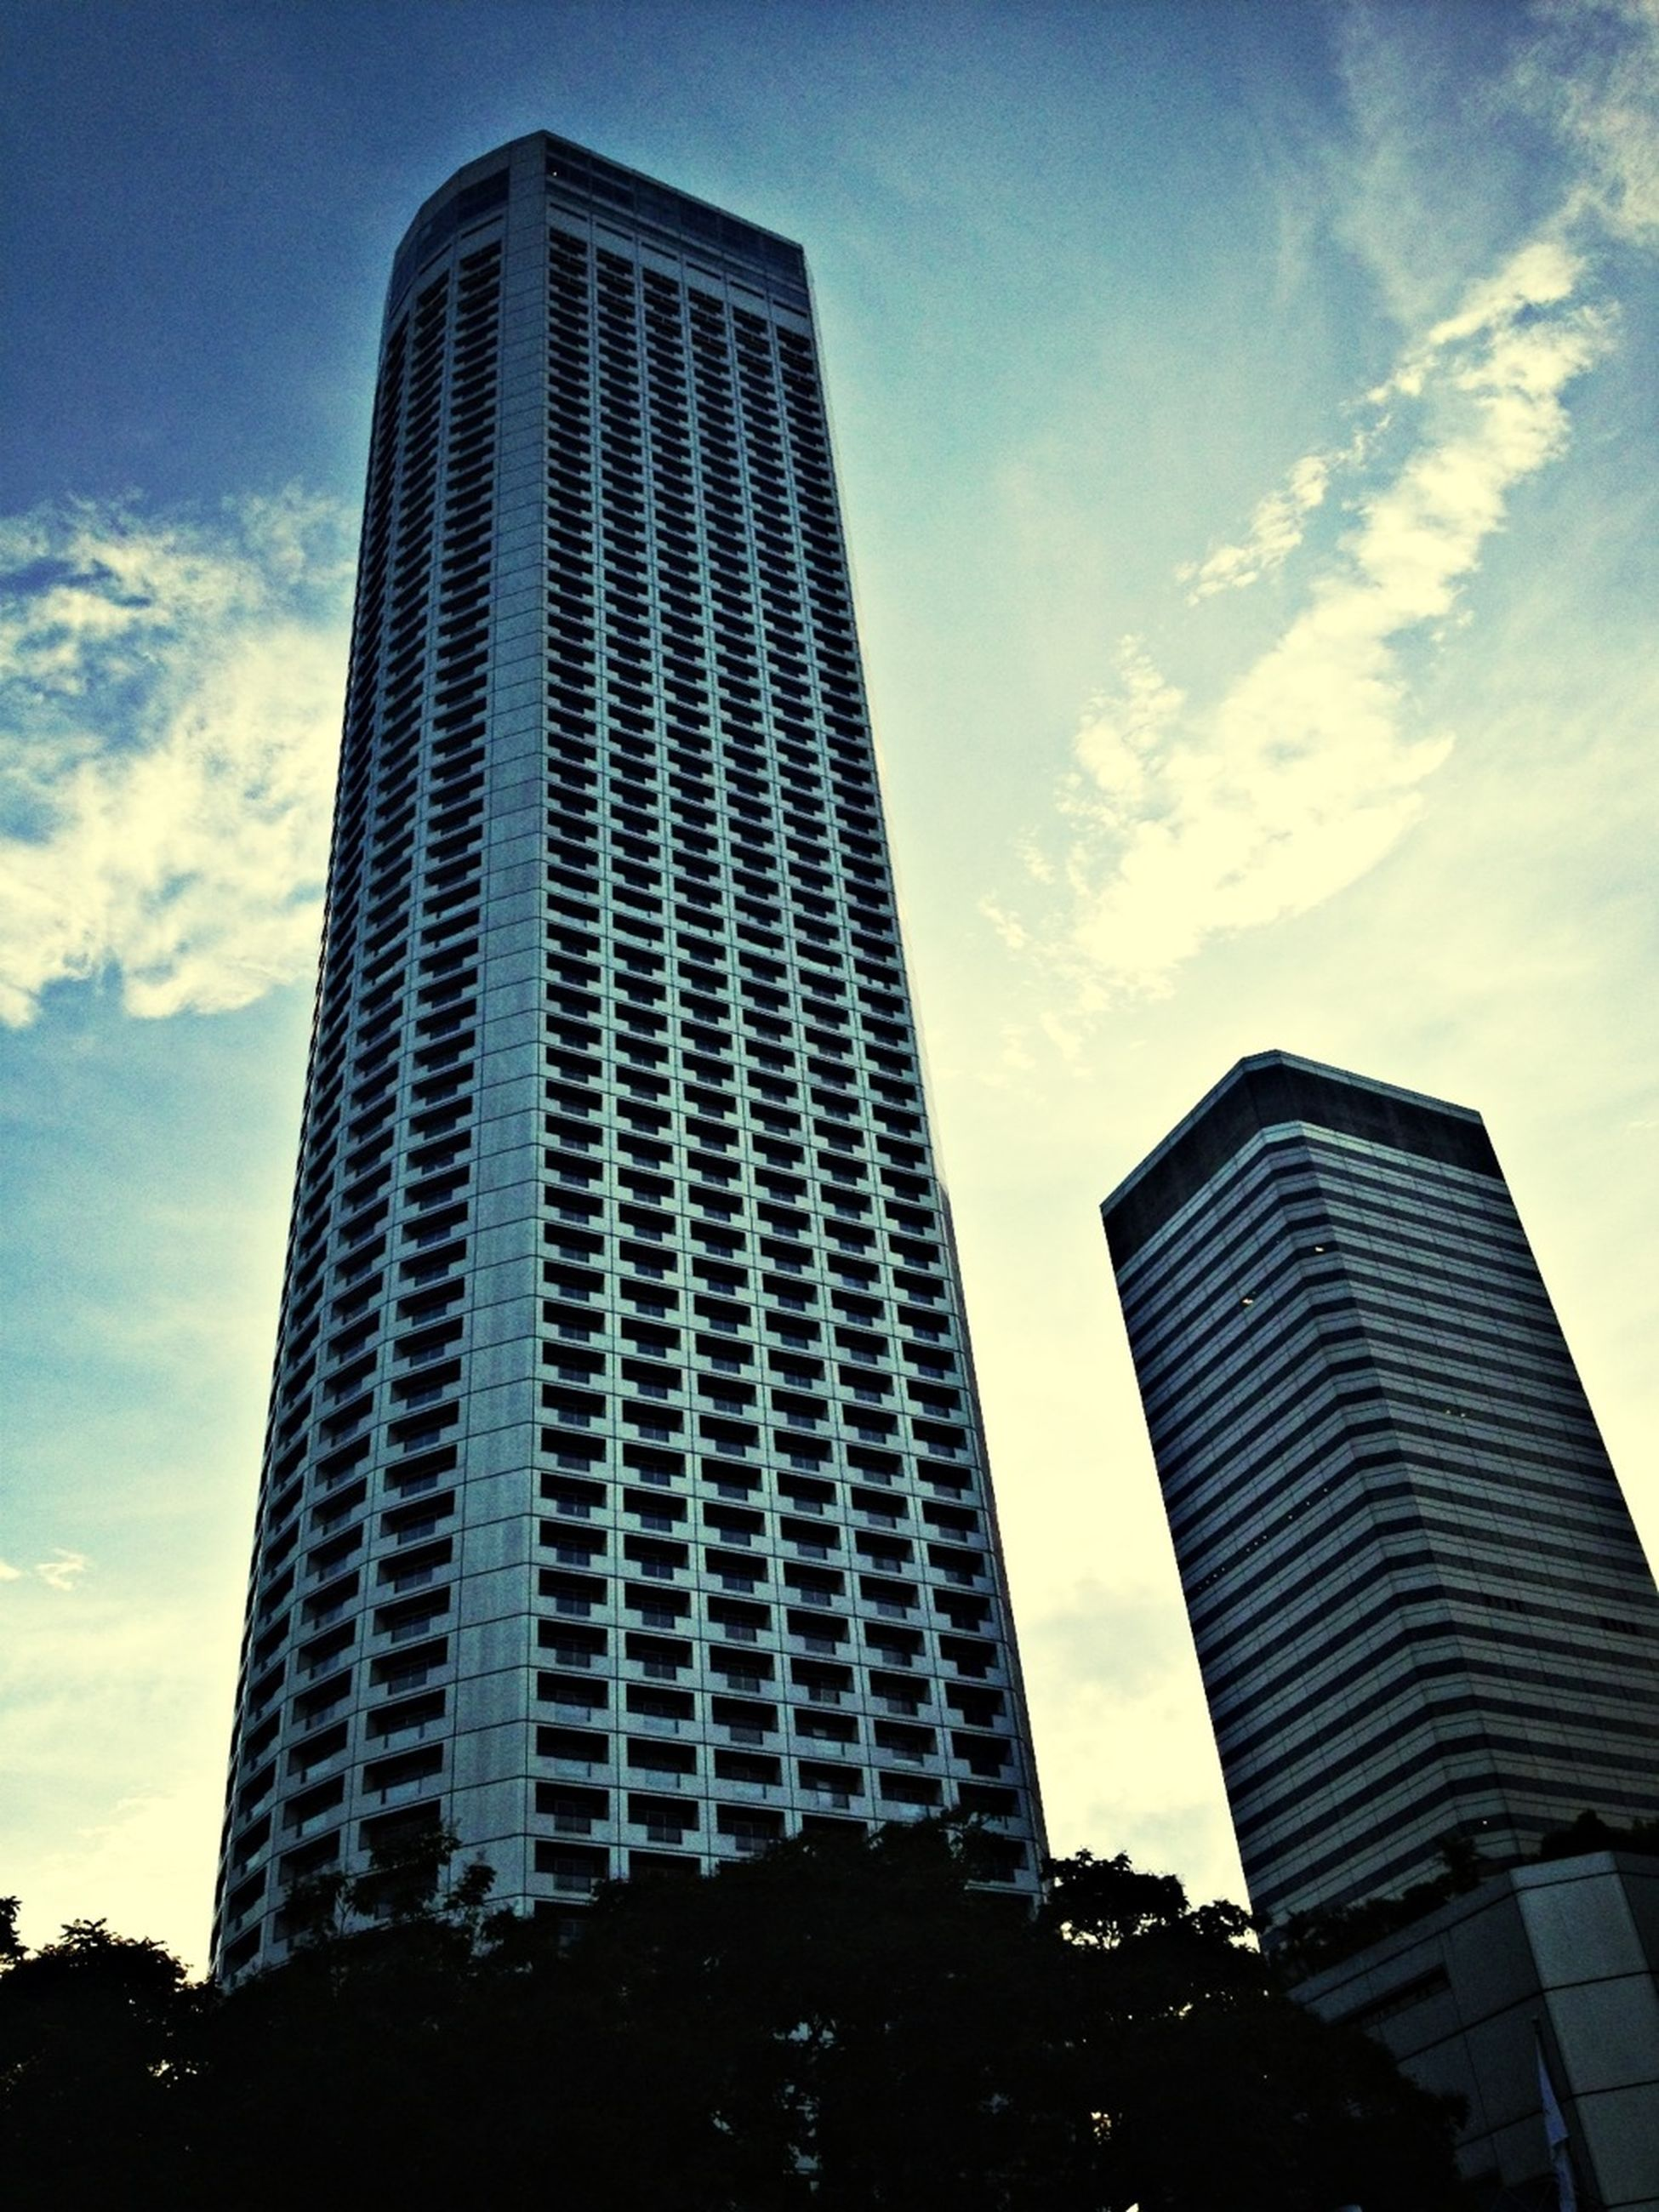 architecture, building exterior, low angle view, built structure, skyscraper, tall - high, modern, sky, office building, city, tower, cloud - sky, glass - material, tall, cloud, building, day, no people, reflection, outdoors